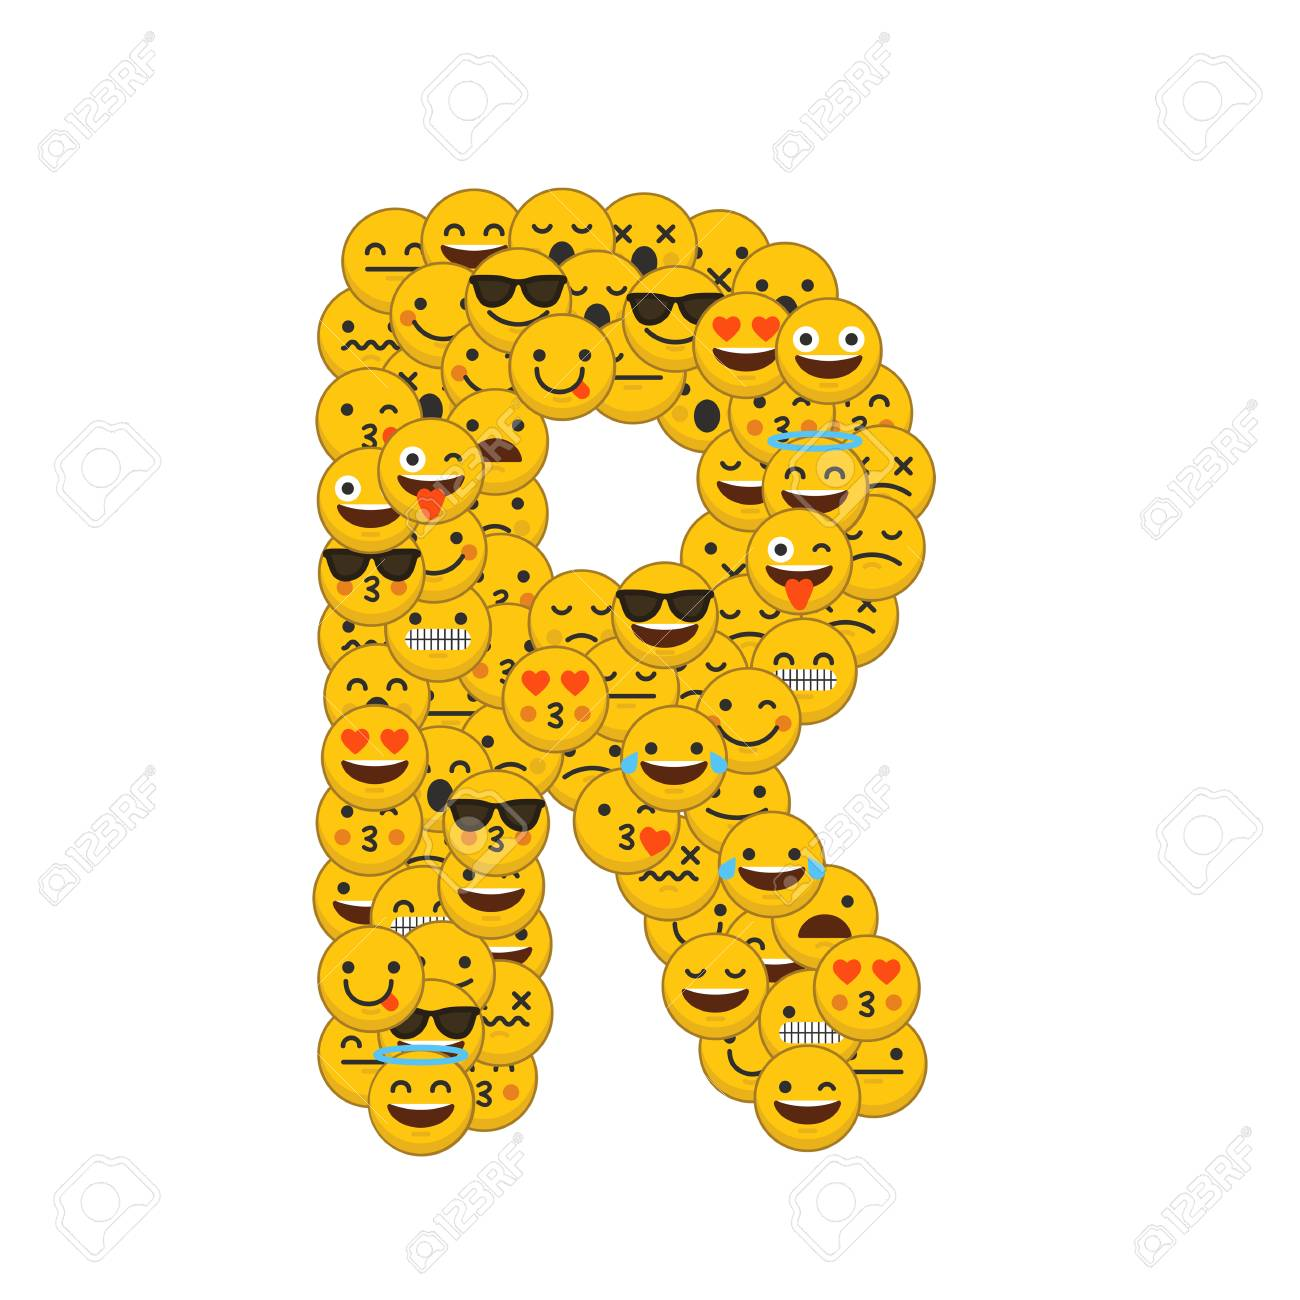 Emoji smiley characters capital letter r stock photo picture and emoji smiley characters capital letter r stock photo 93223599 altavistaventures Image collections